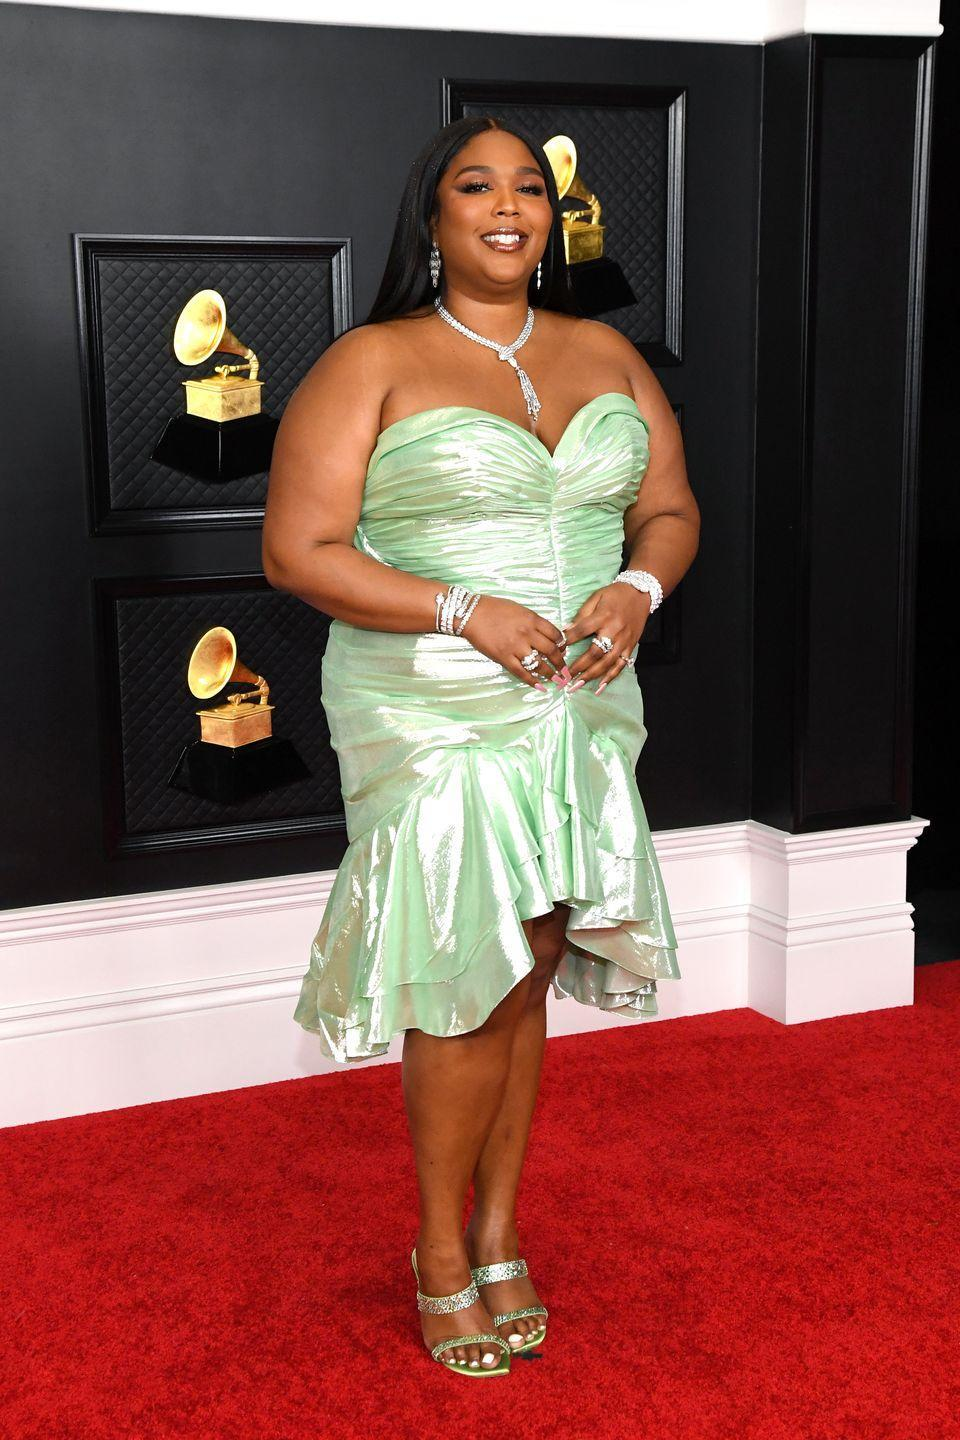 <p>Lizzo opted for a strapless, metallic green midi dress by Balmain for the 2021 Grammys, which was complete with a mermaid-inspired ruffled hem. She later changed into a floor-length, pink version of the frock as she presented on stage.</p>